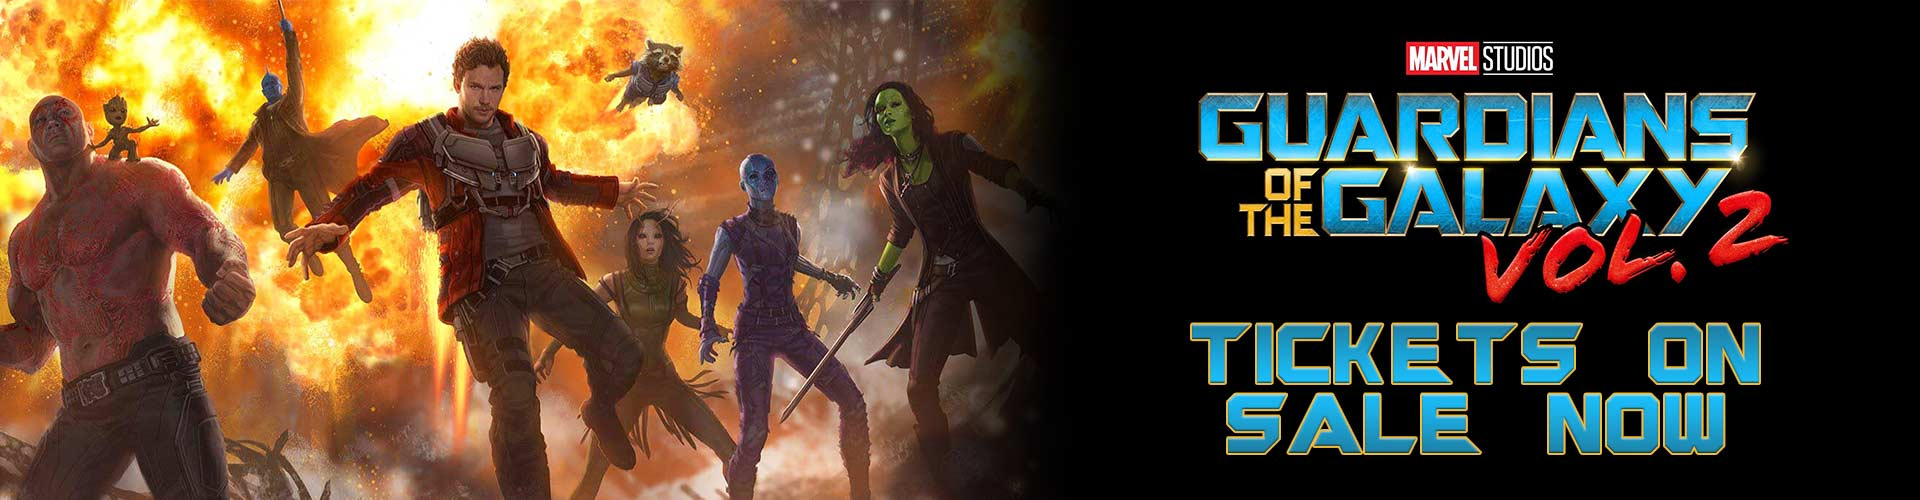 guardians-tickets-on-sale